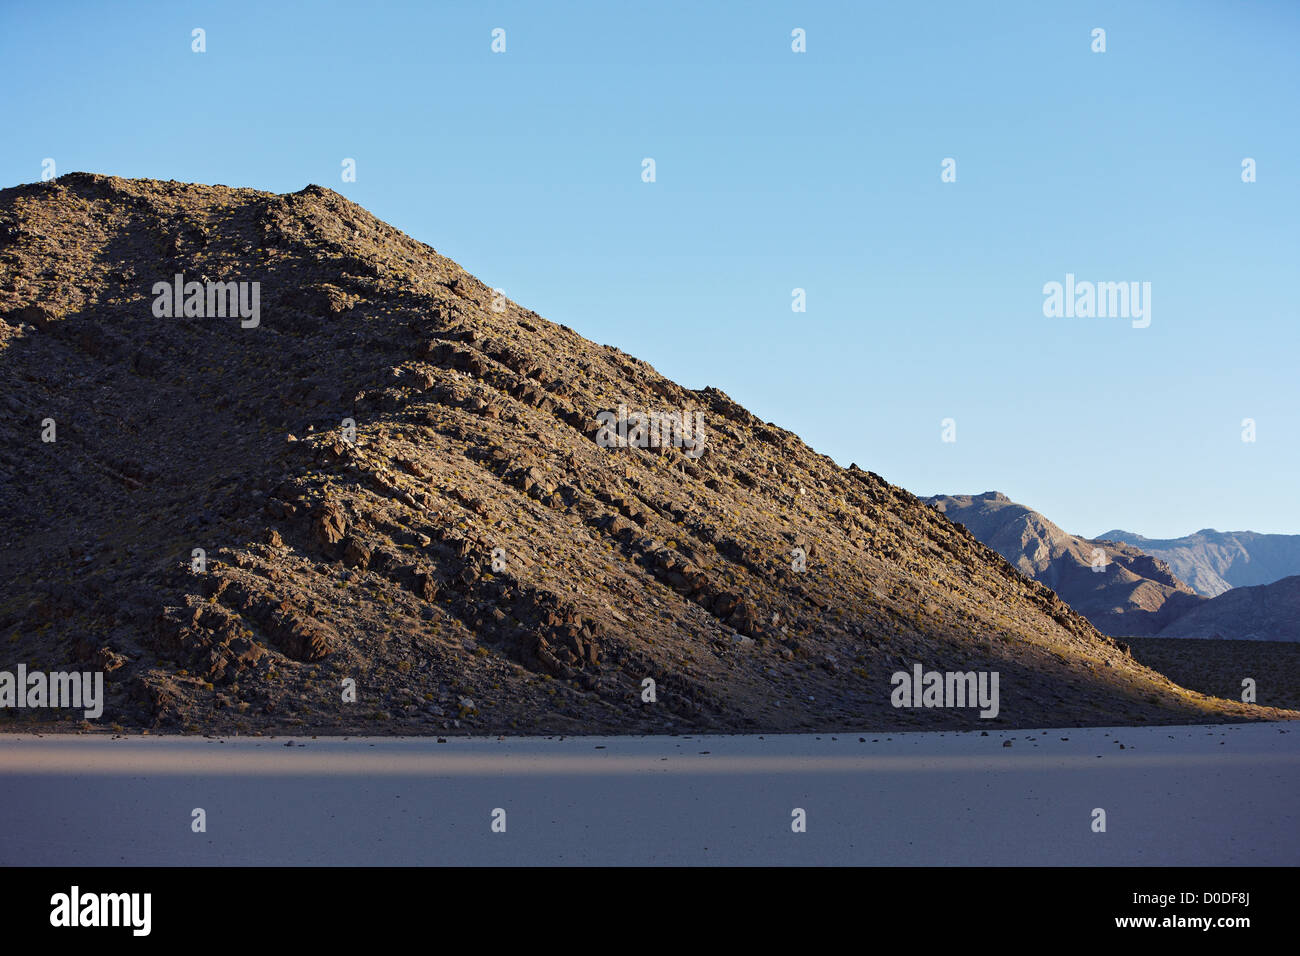 A ridge dolomite that forms southern periphery Racetrack Valley abuts Racetrack Playa Death Valley National Park - Stock Image